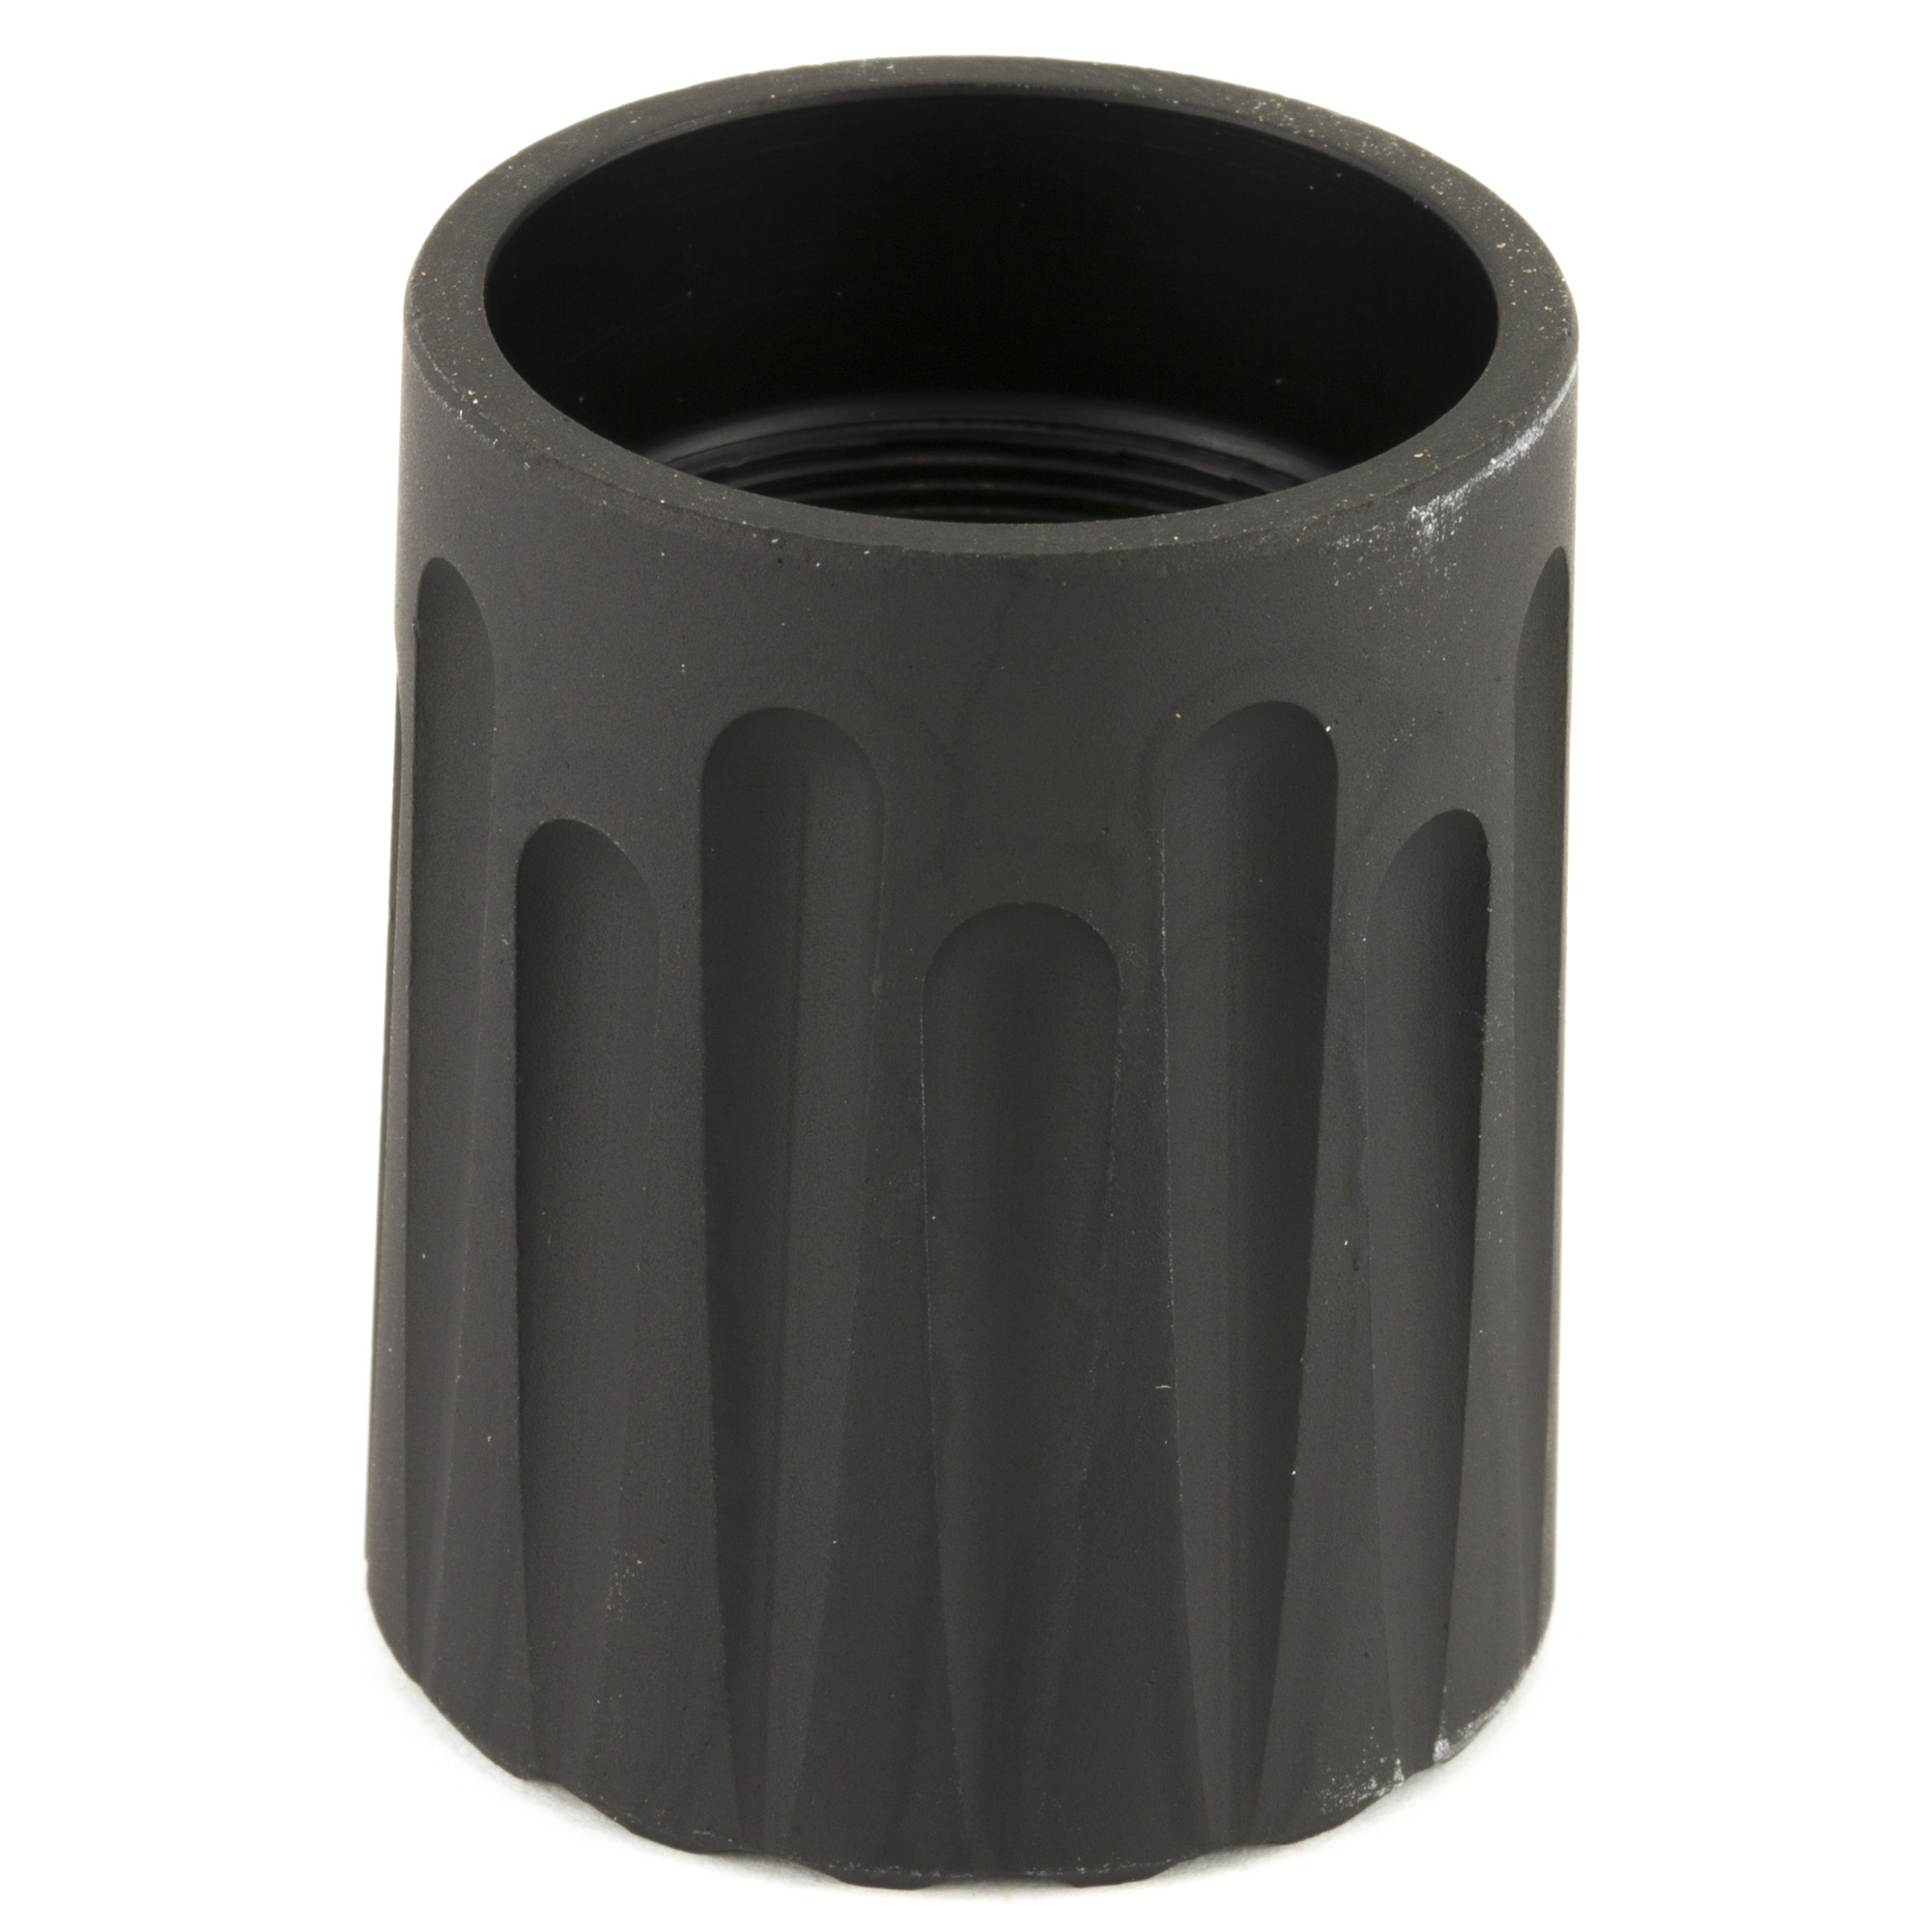 The MXT extension nut allows for installation of a Nordic Components MXT 12ga shotgun extension tube kit. The nut replaces the factory magazine cap and is required for installation of the extension tube kit.